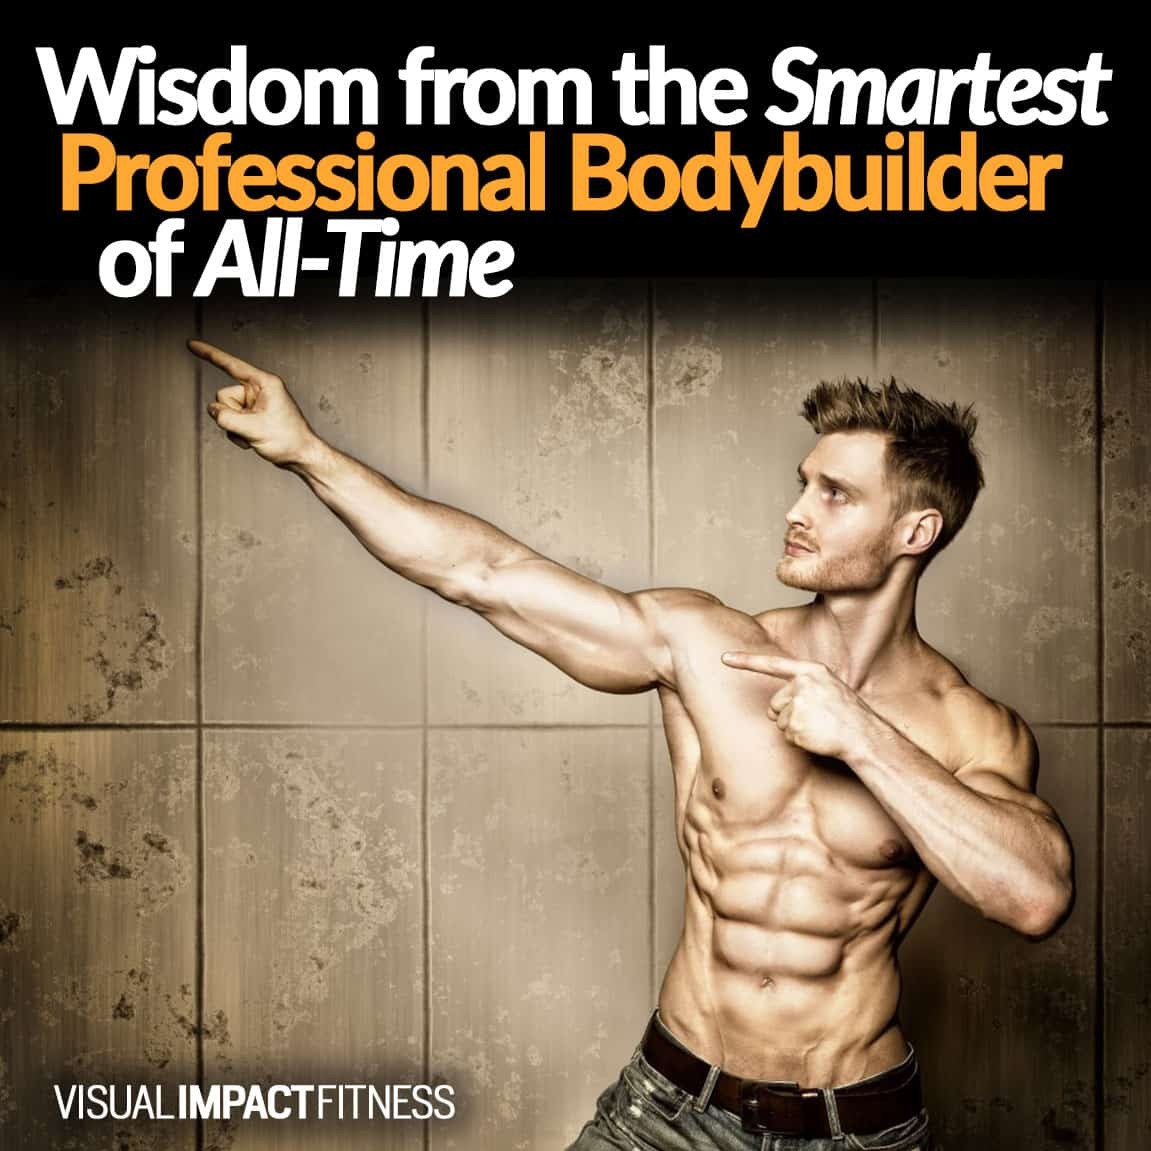 The Smartest Professional Bodybuilder of All-Time?